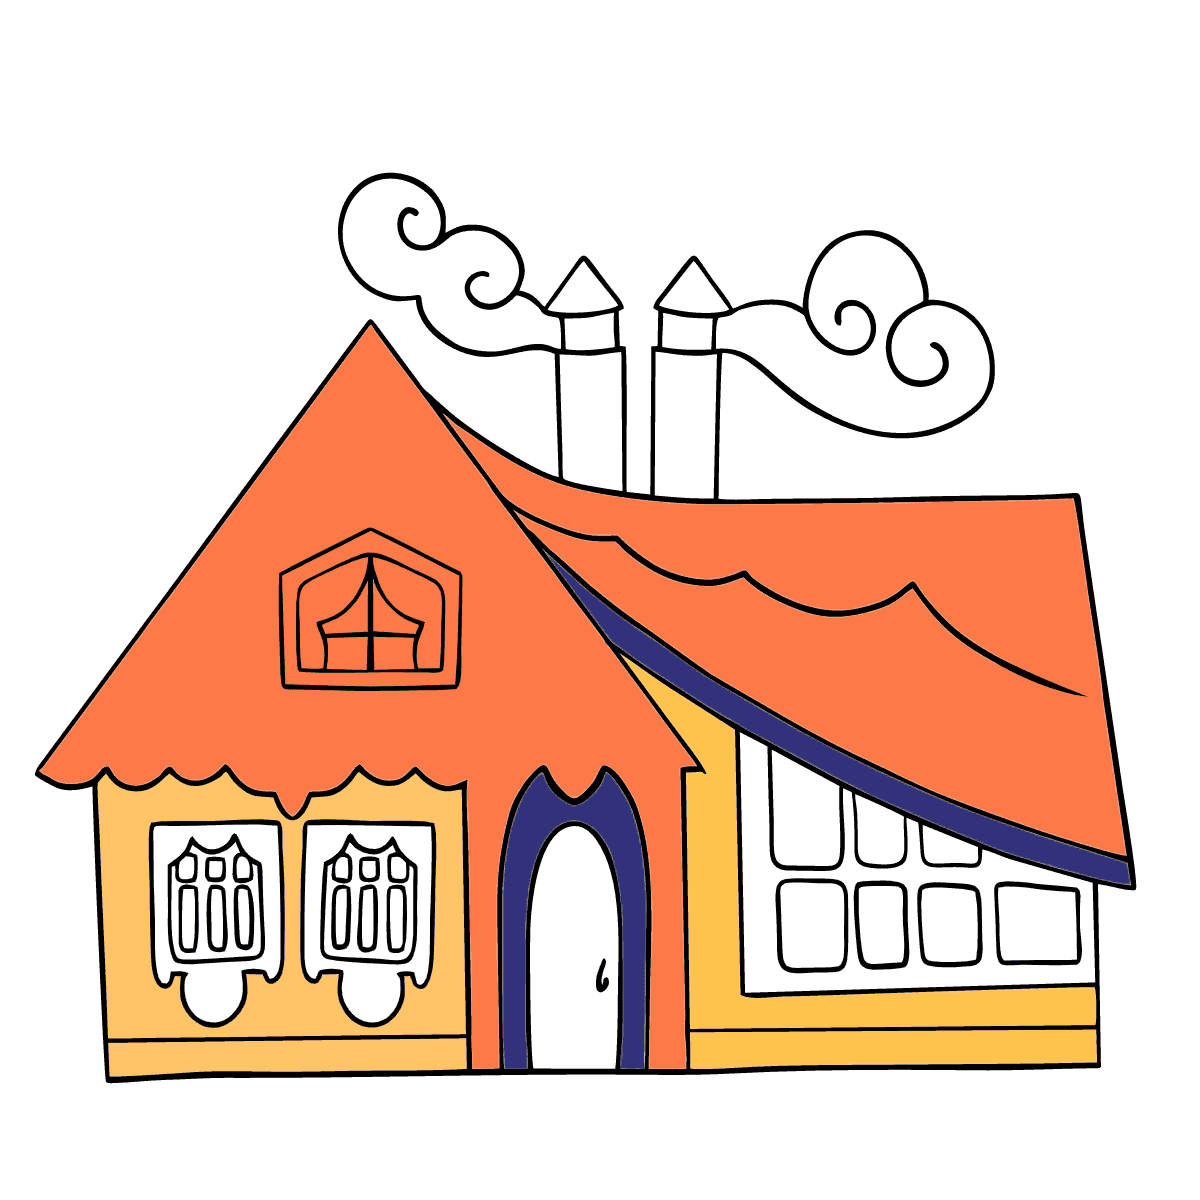 Simple Coloring Page - A Tiny House